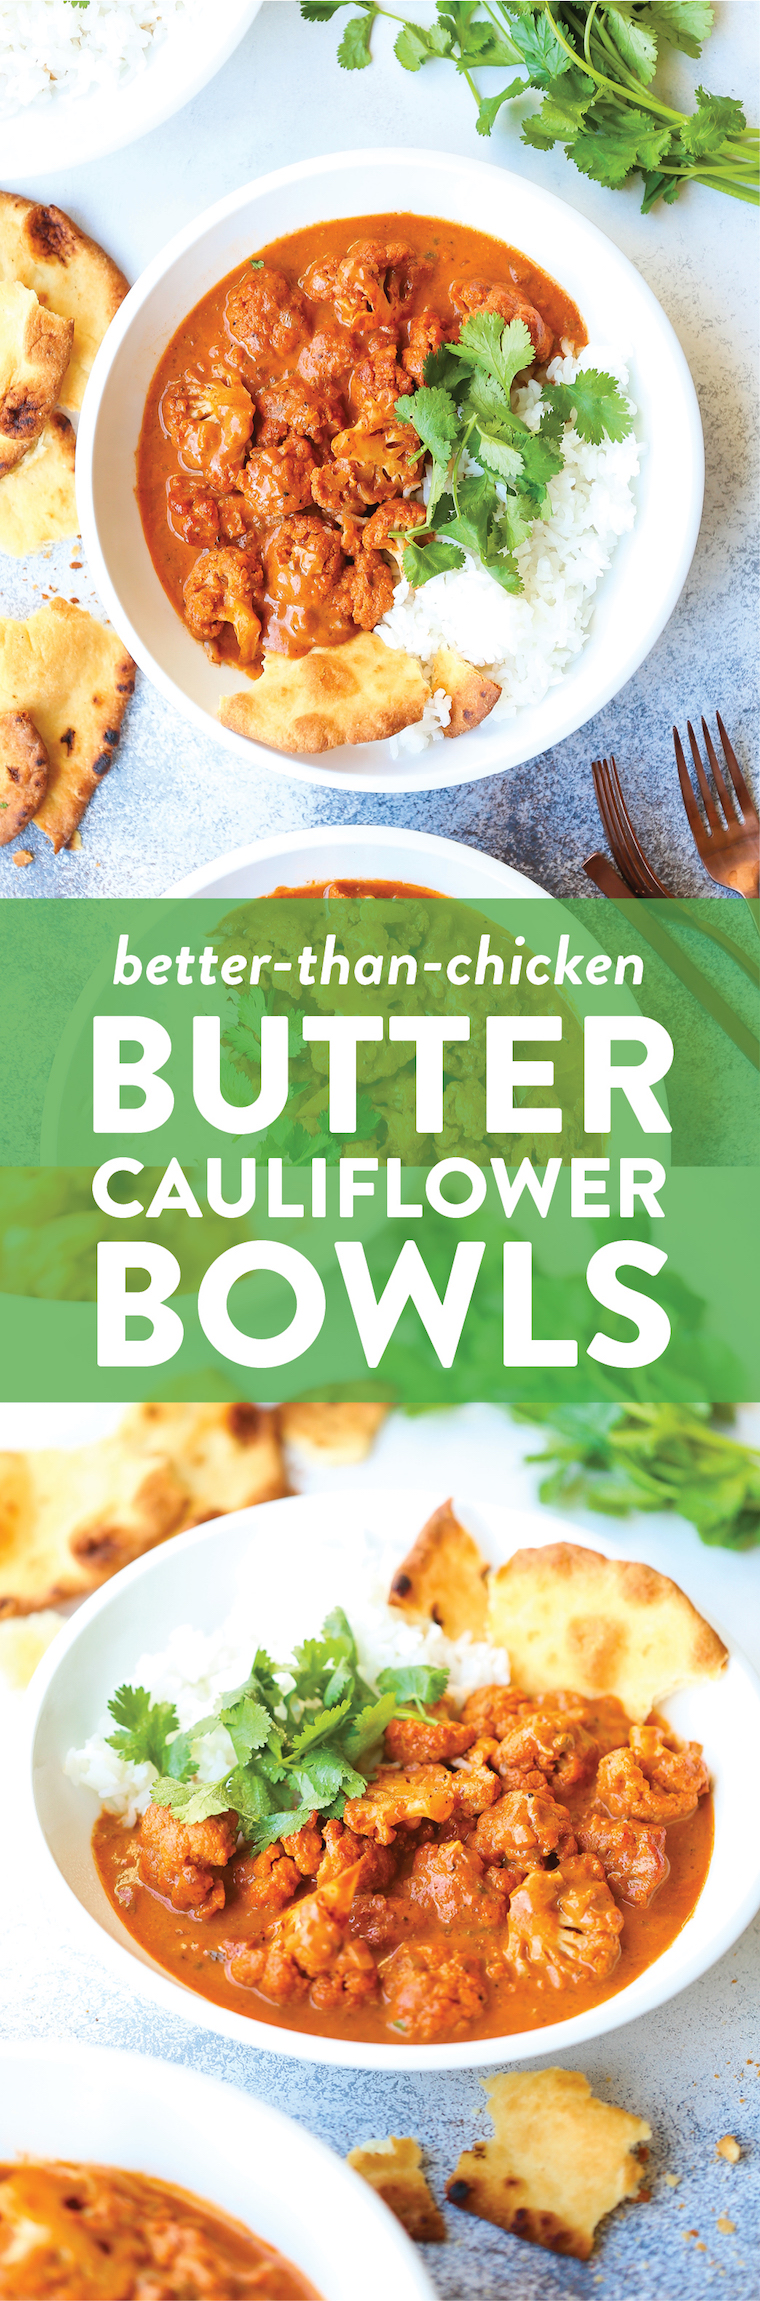 Butter Cauliflower Bowls - Indian butter chicken is made healthier + heartier with nutrient-loaded cauliflower! Just as creamy and flavorful, if not better!